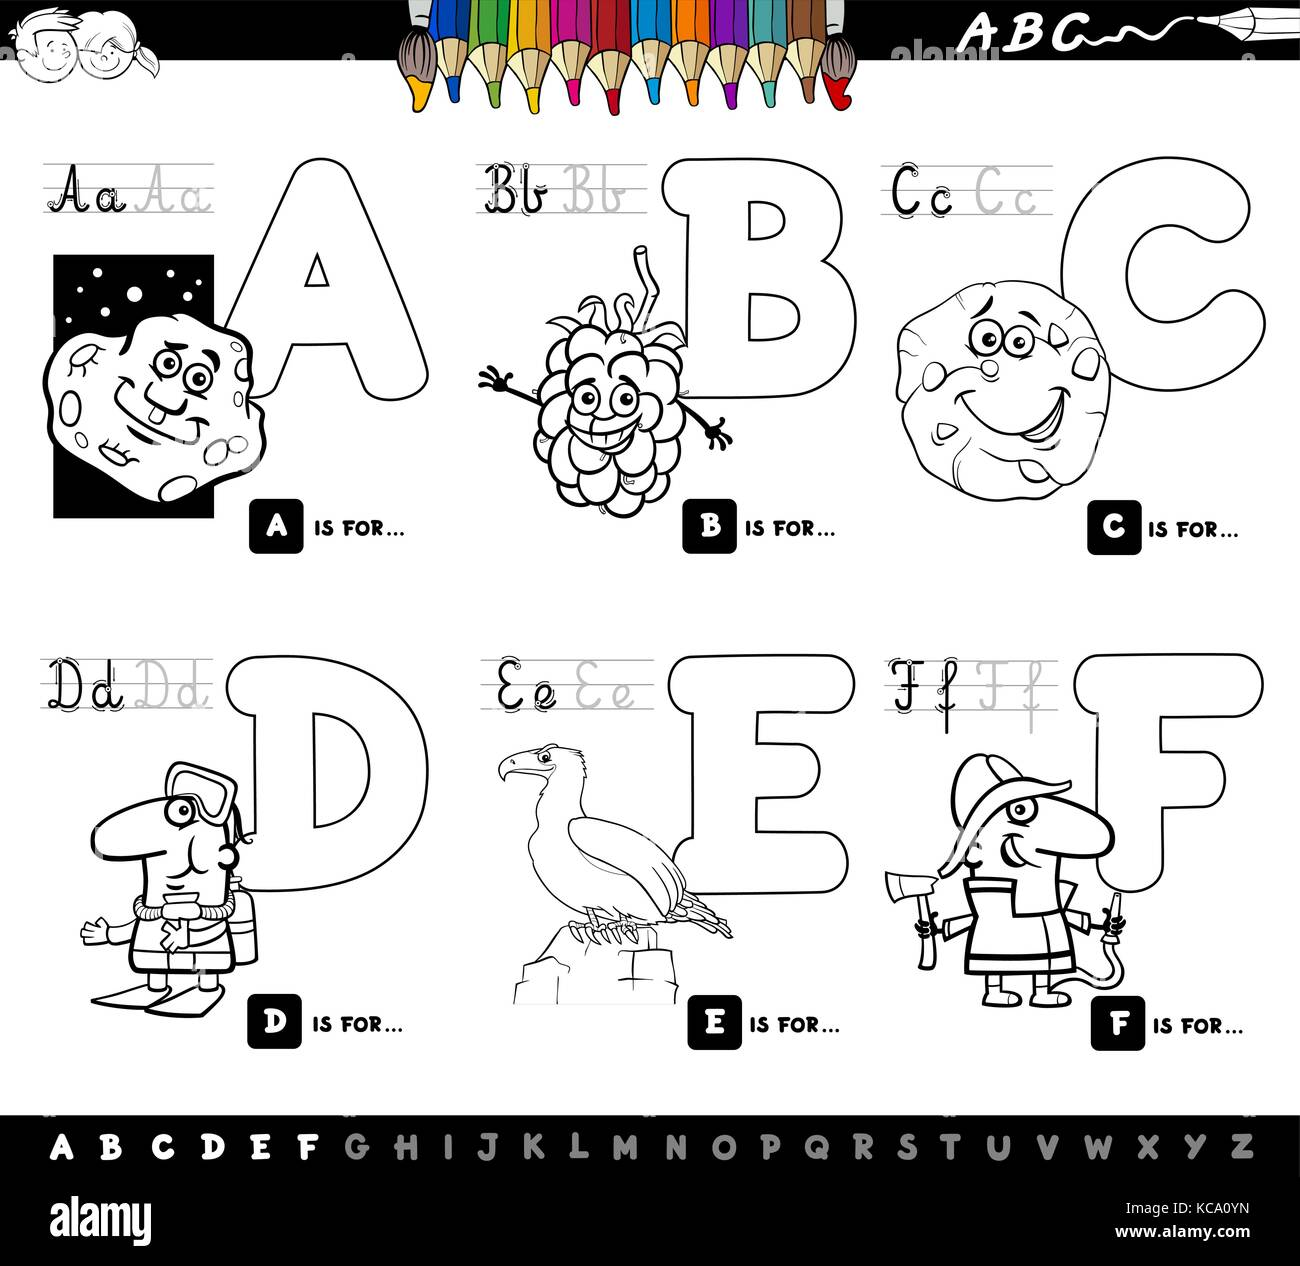 Black And White Cartoon Illustration Of Capital Letters Alphabet